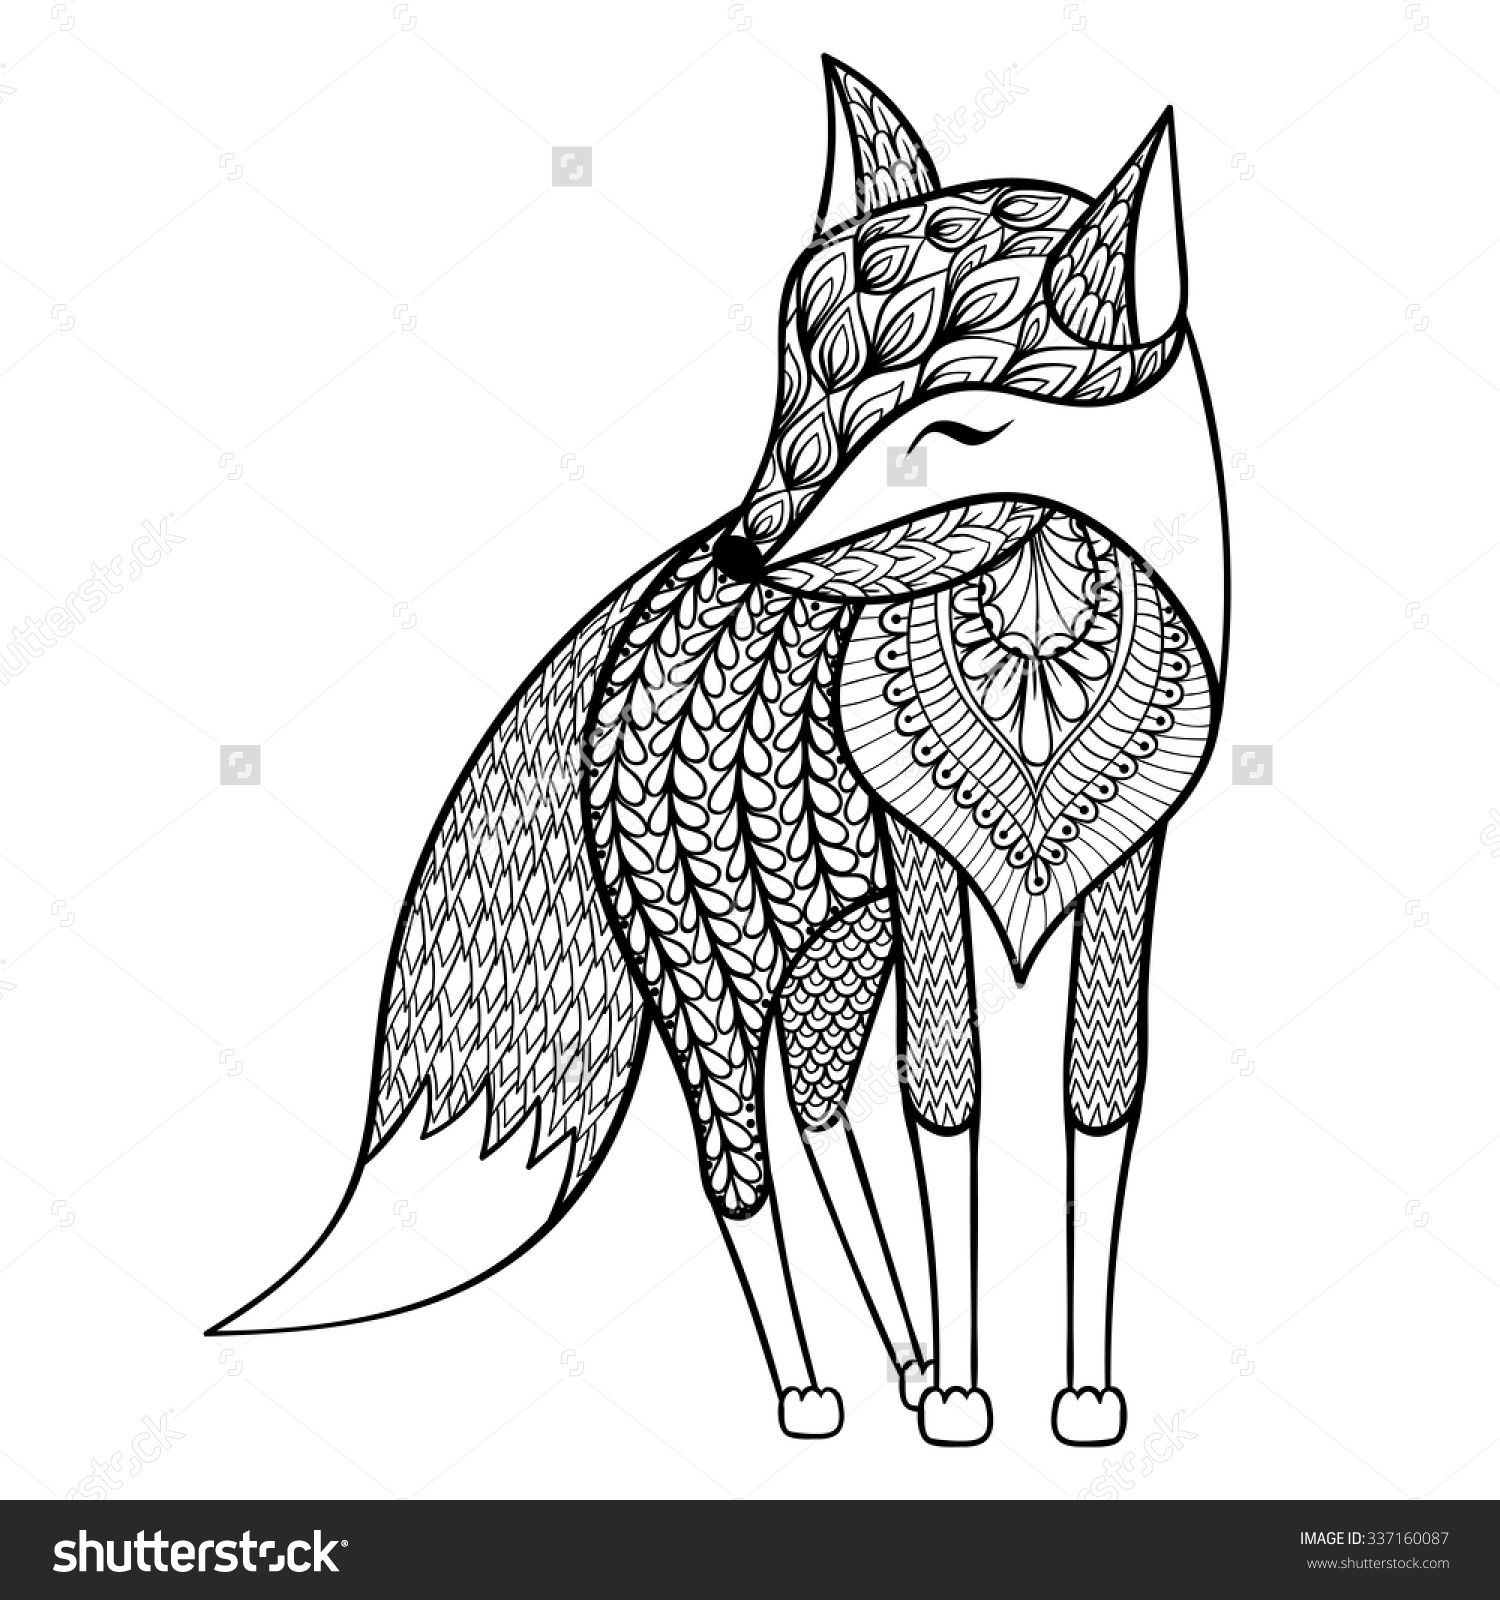 Zentangle Vector Happy Fox For Adult Anti Stress Coloring Pages Ornamental Tribal Patterned